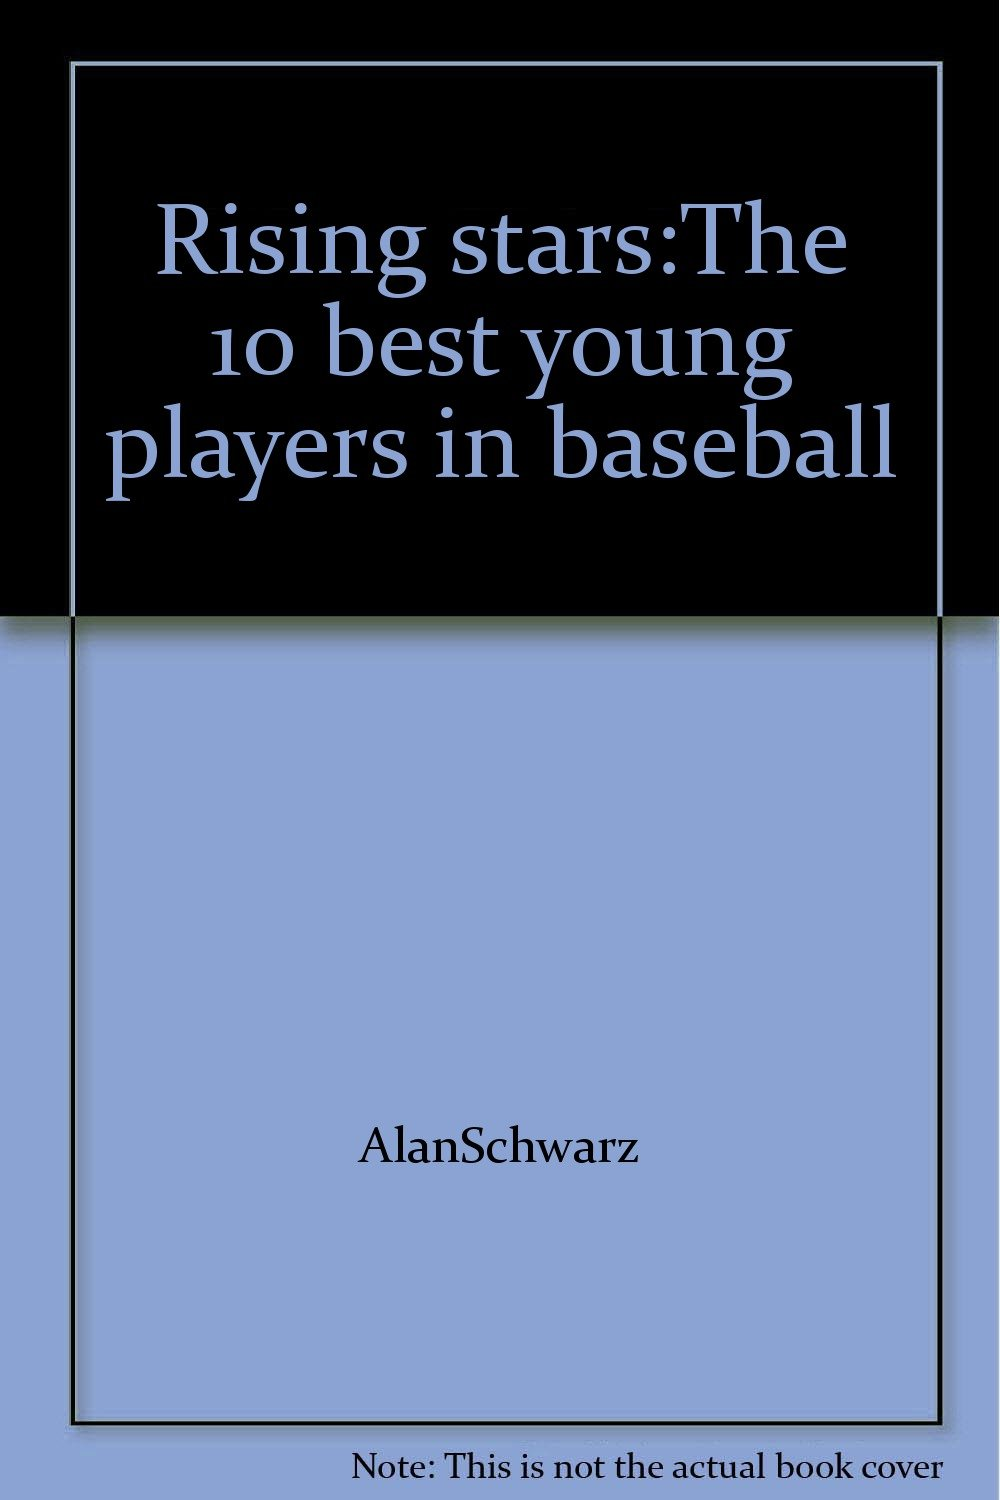 Rising stars: The 10 best young players in baseball (Sports illustrated for kids books)